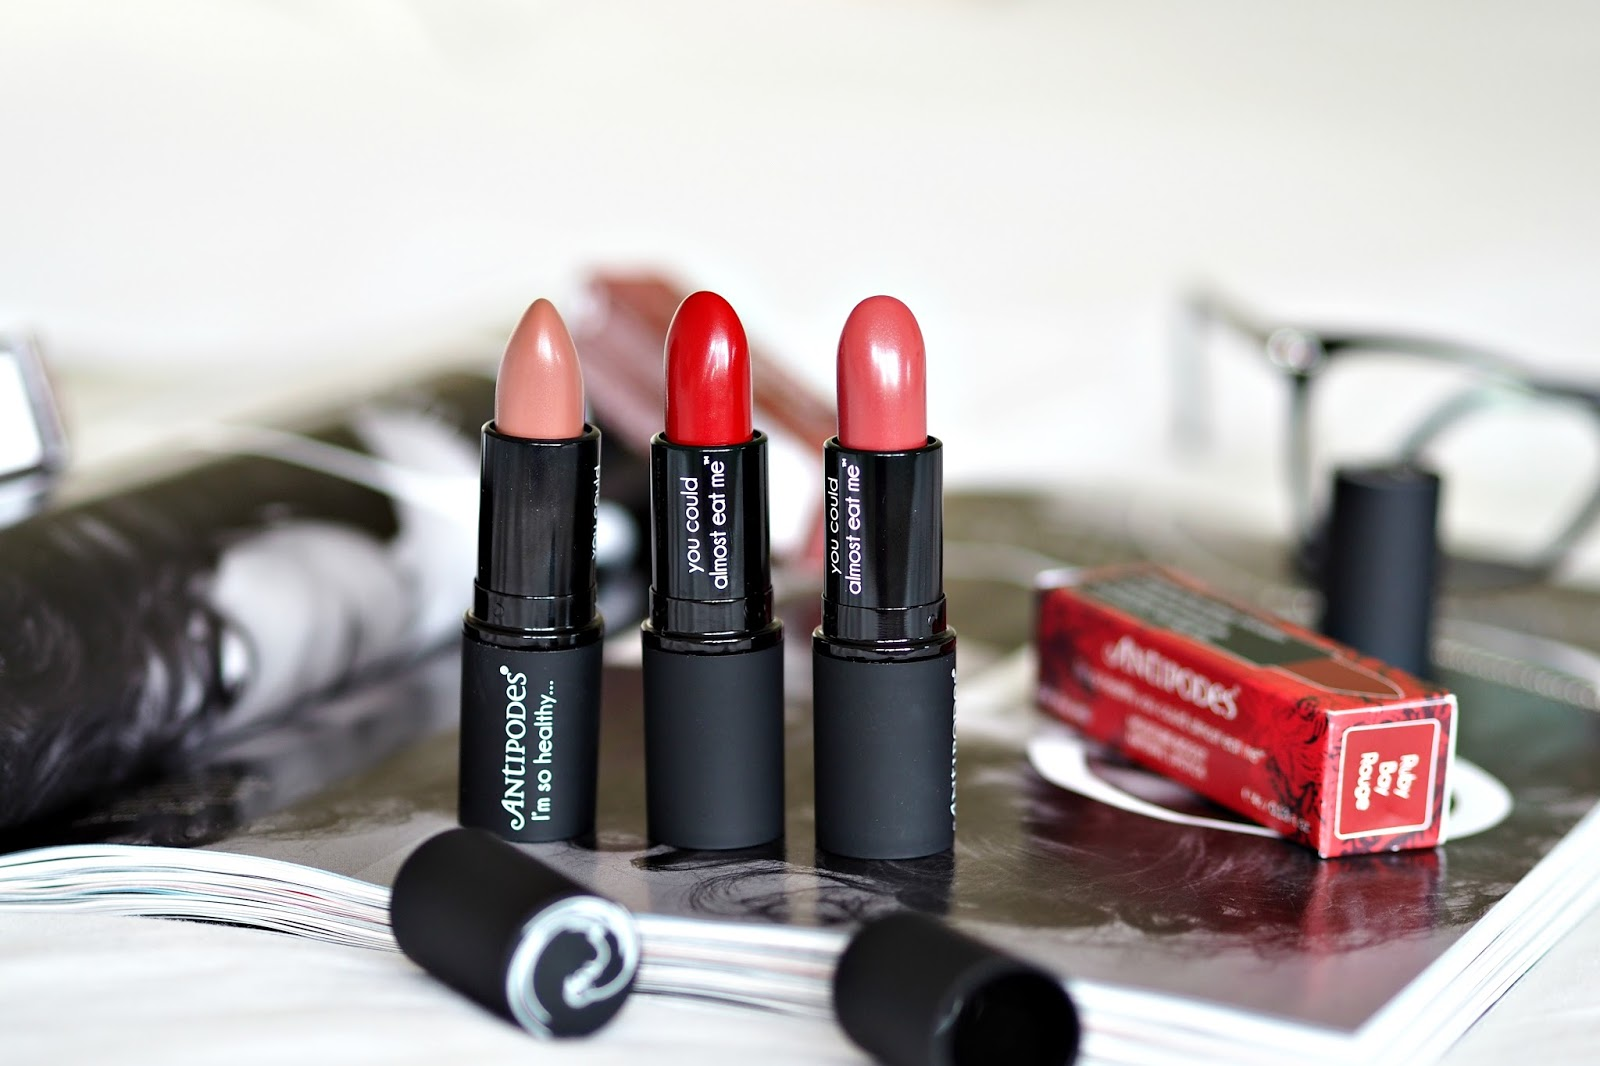 Antipodes Lipsticks